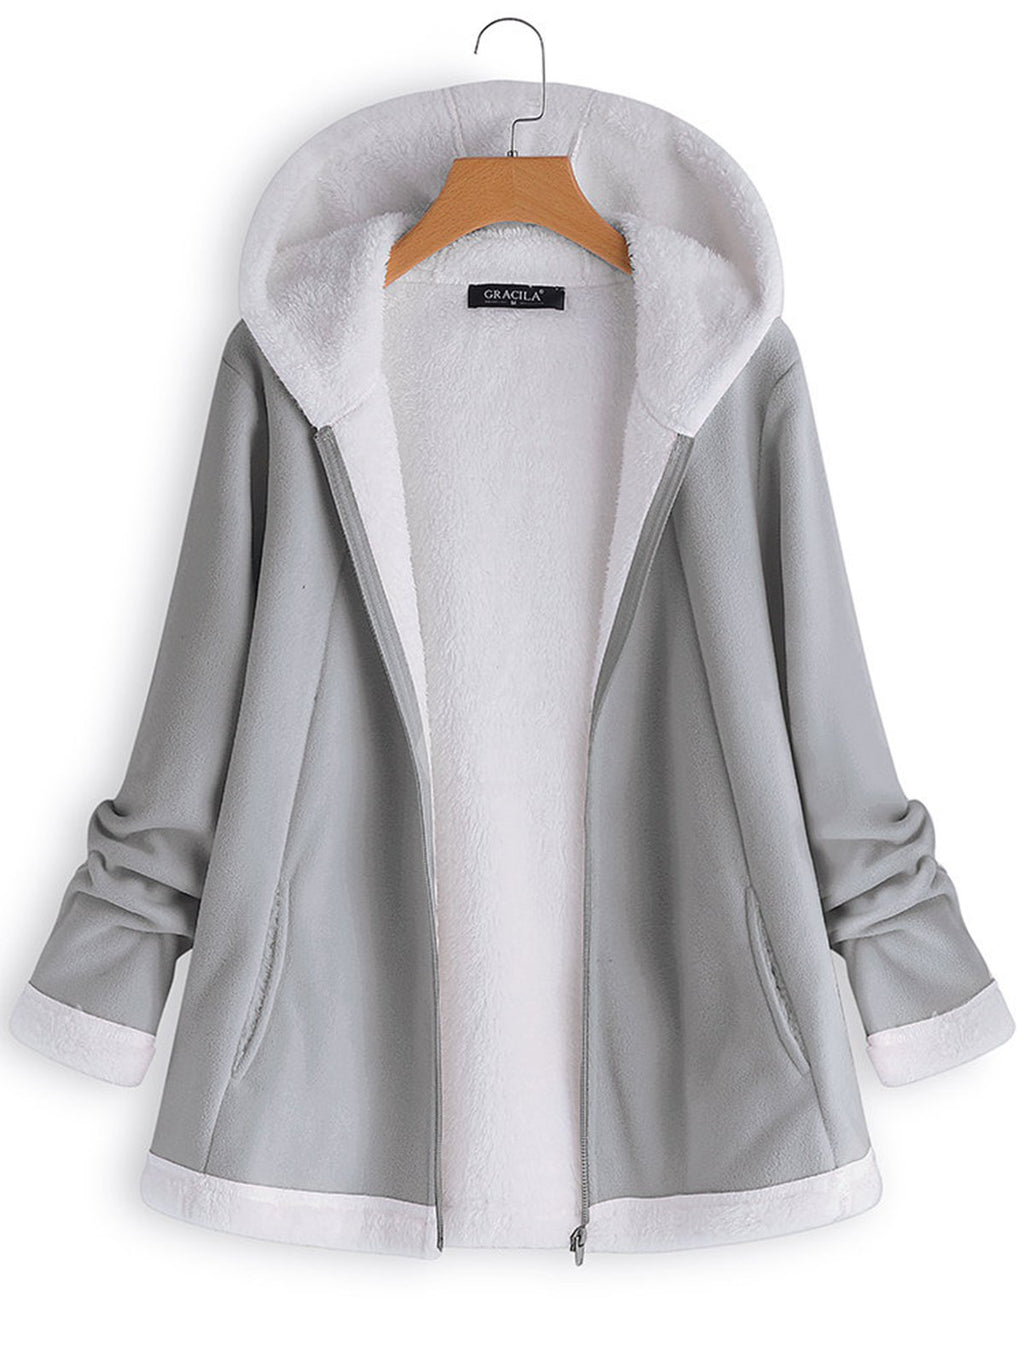 Women's Casual Hooded Zipper Long Sleeve Fleece Coats